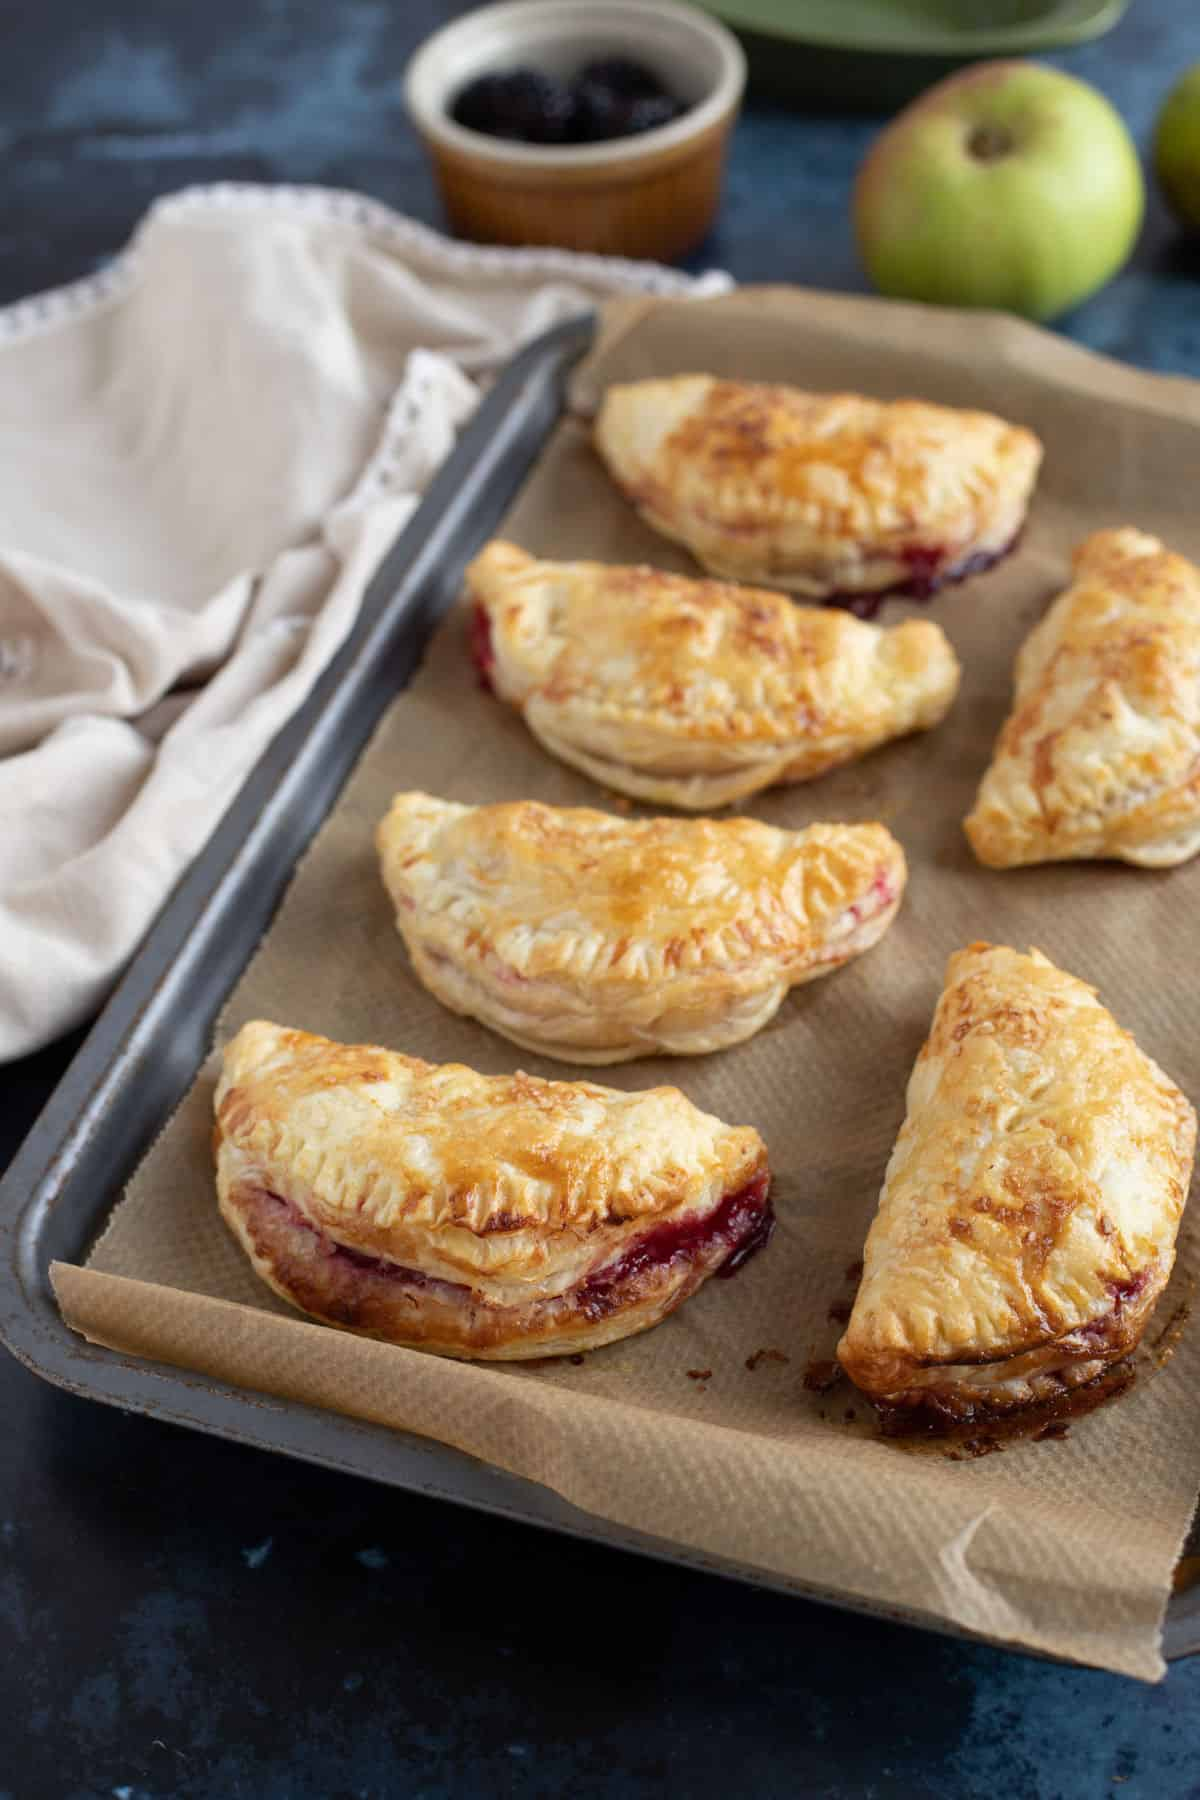 6 apple and blackberry turnovers on a baking tray with cooking apples in the background.